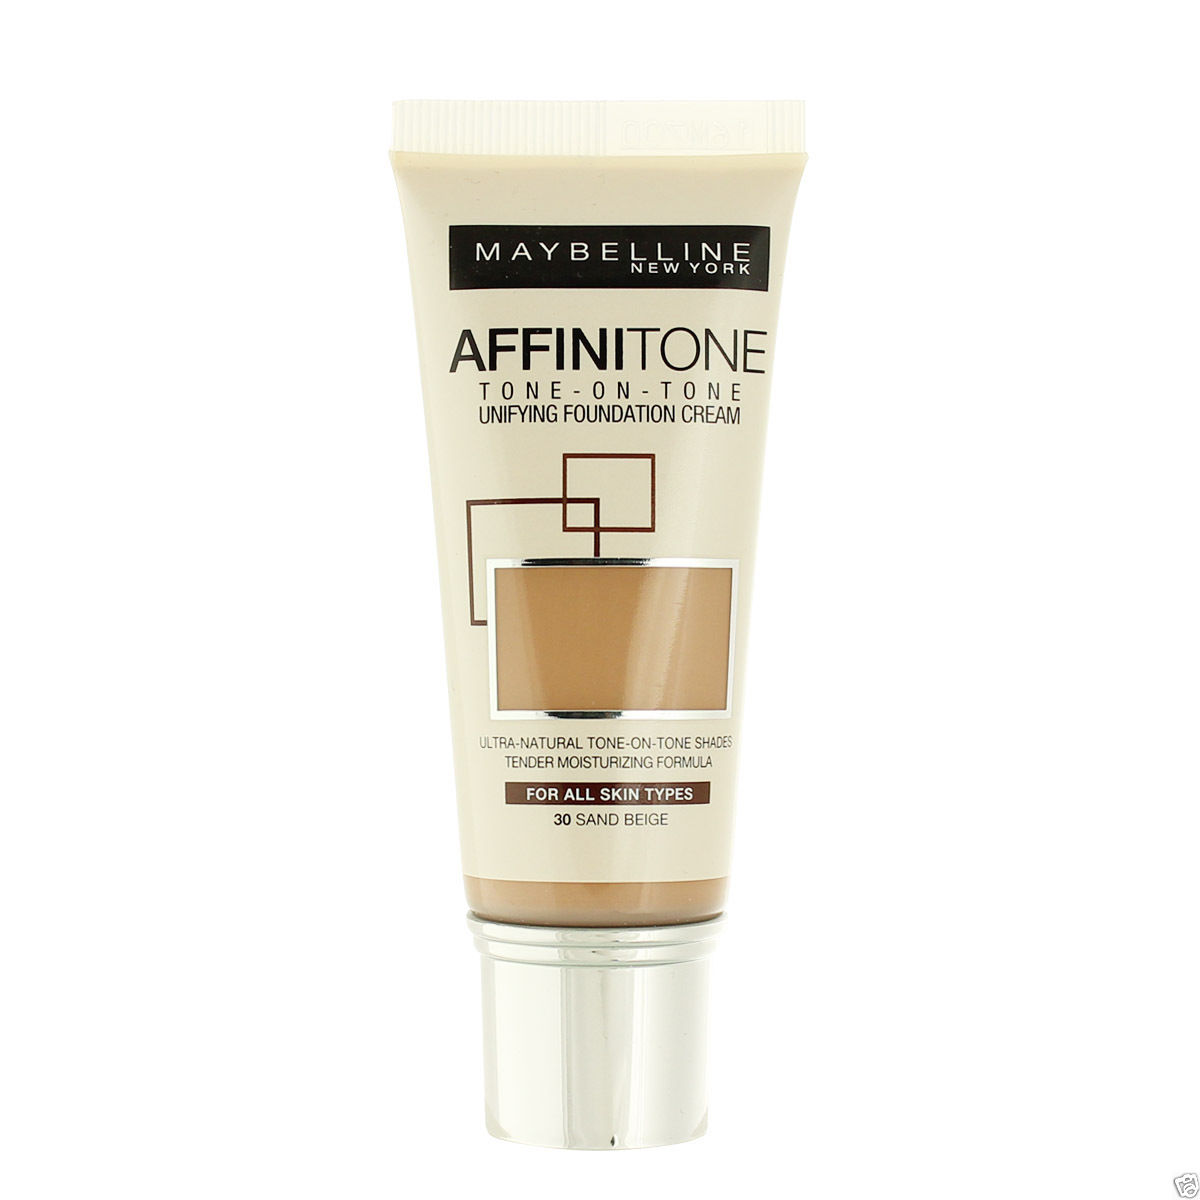 maybelline affinitone color chart cold tones: Maybelline affinitone unifying foundation cream 30ml various